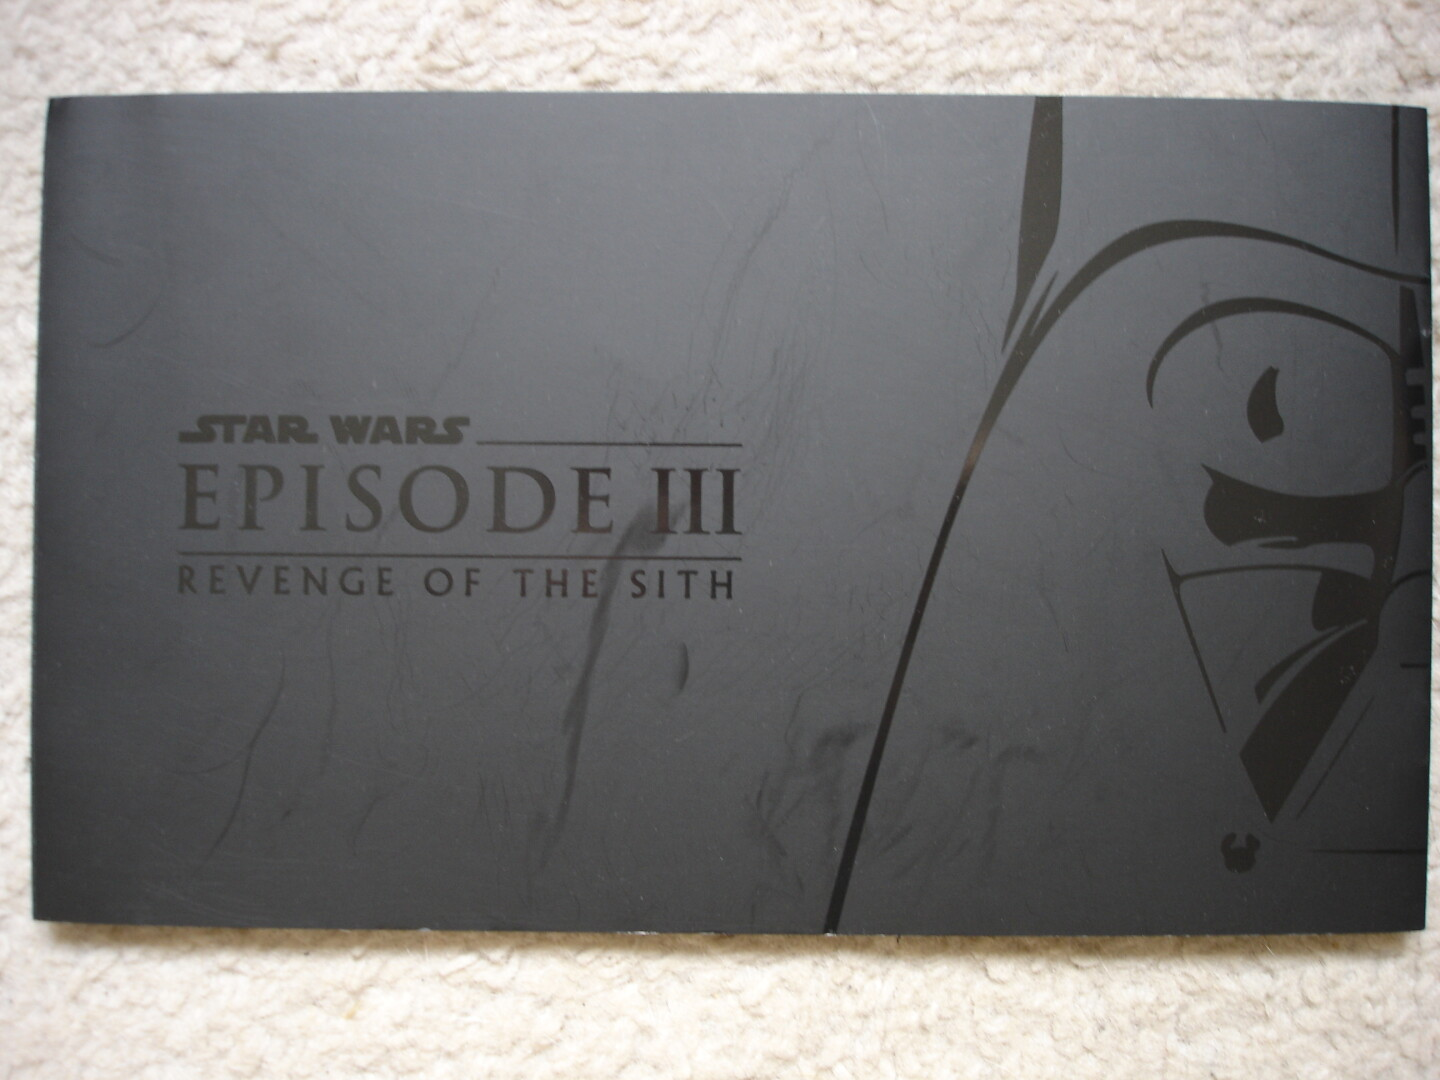 UK PREMIERE REVENGE OF THE SITH GLOSSY BOOKLET